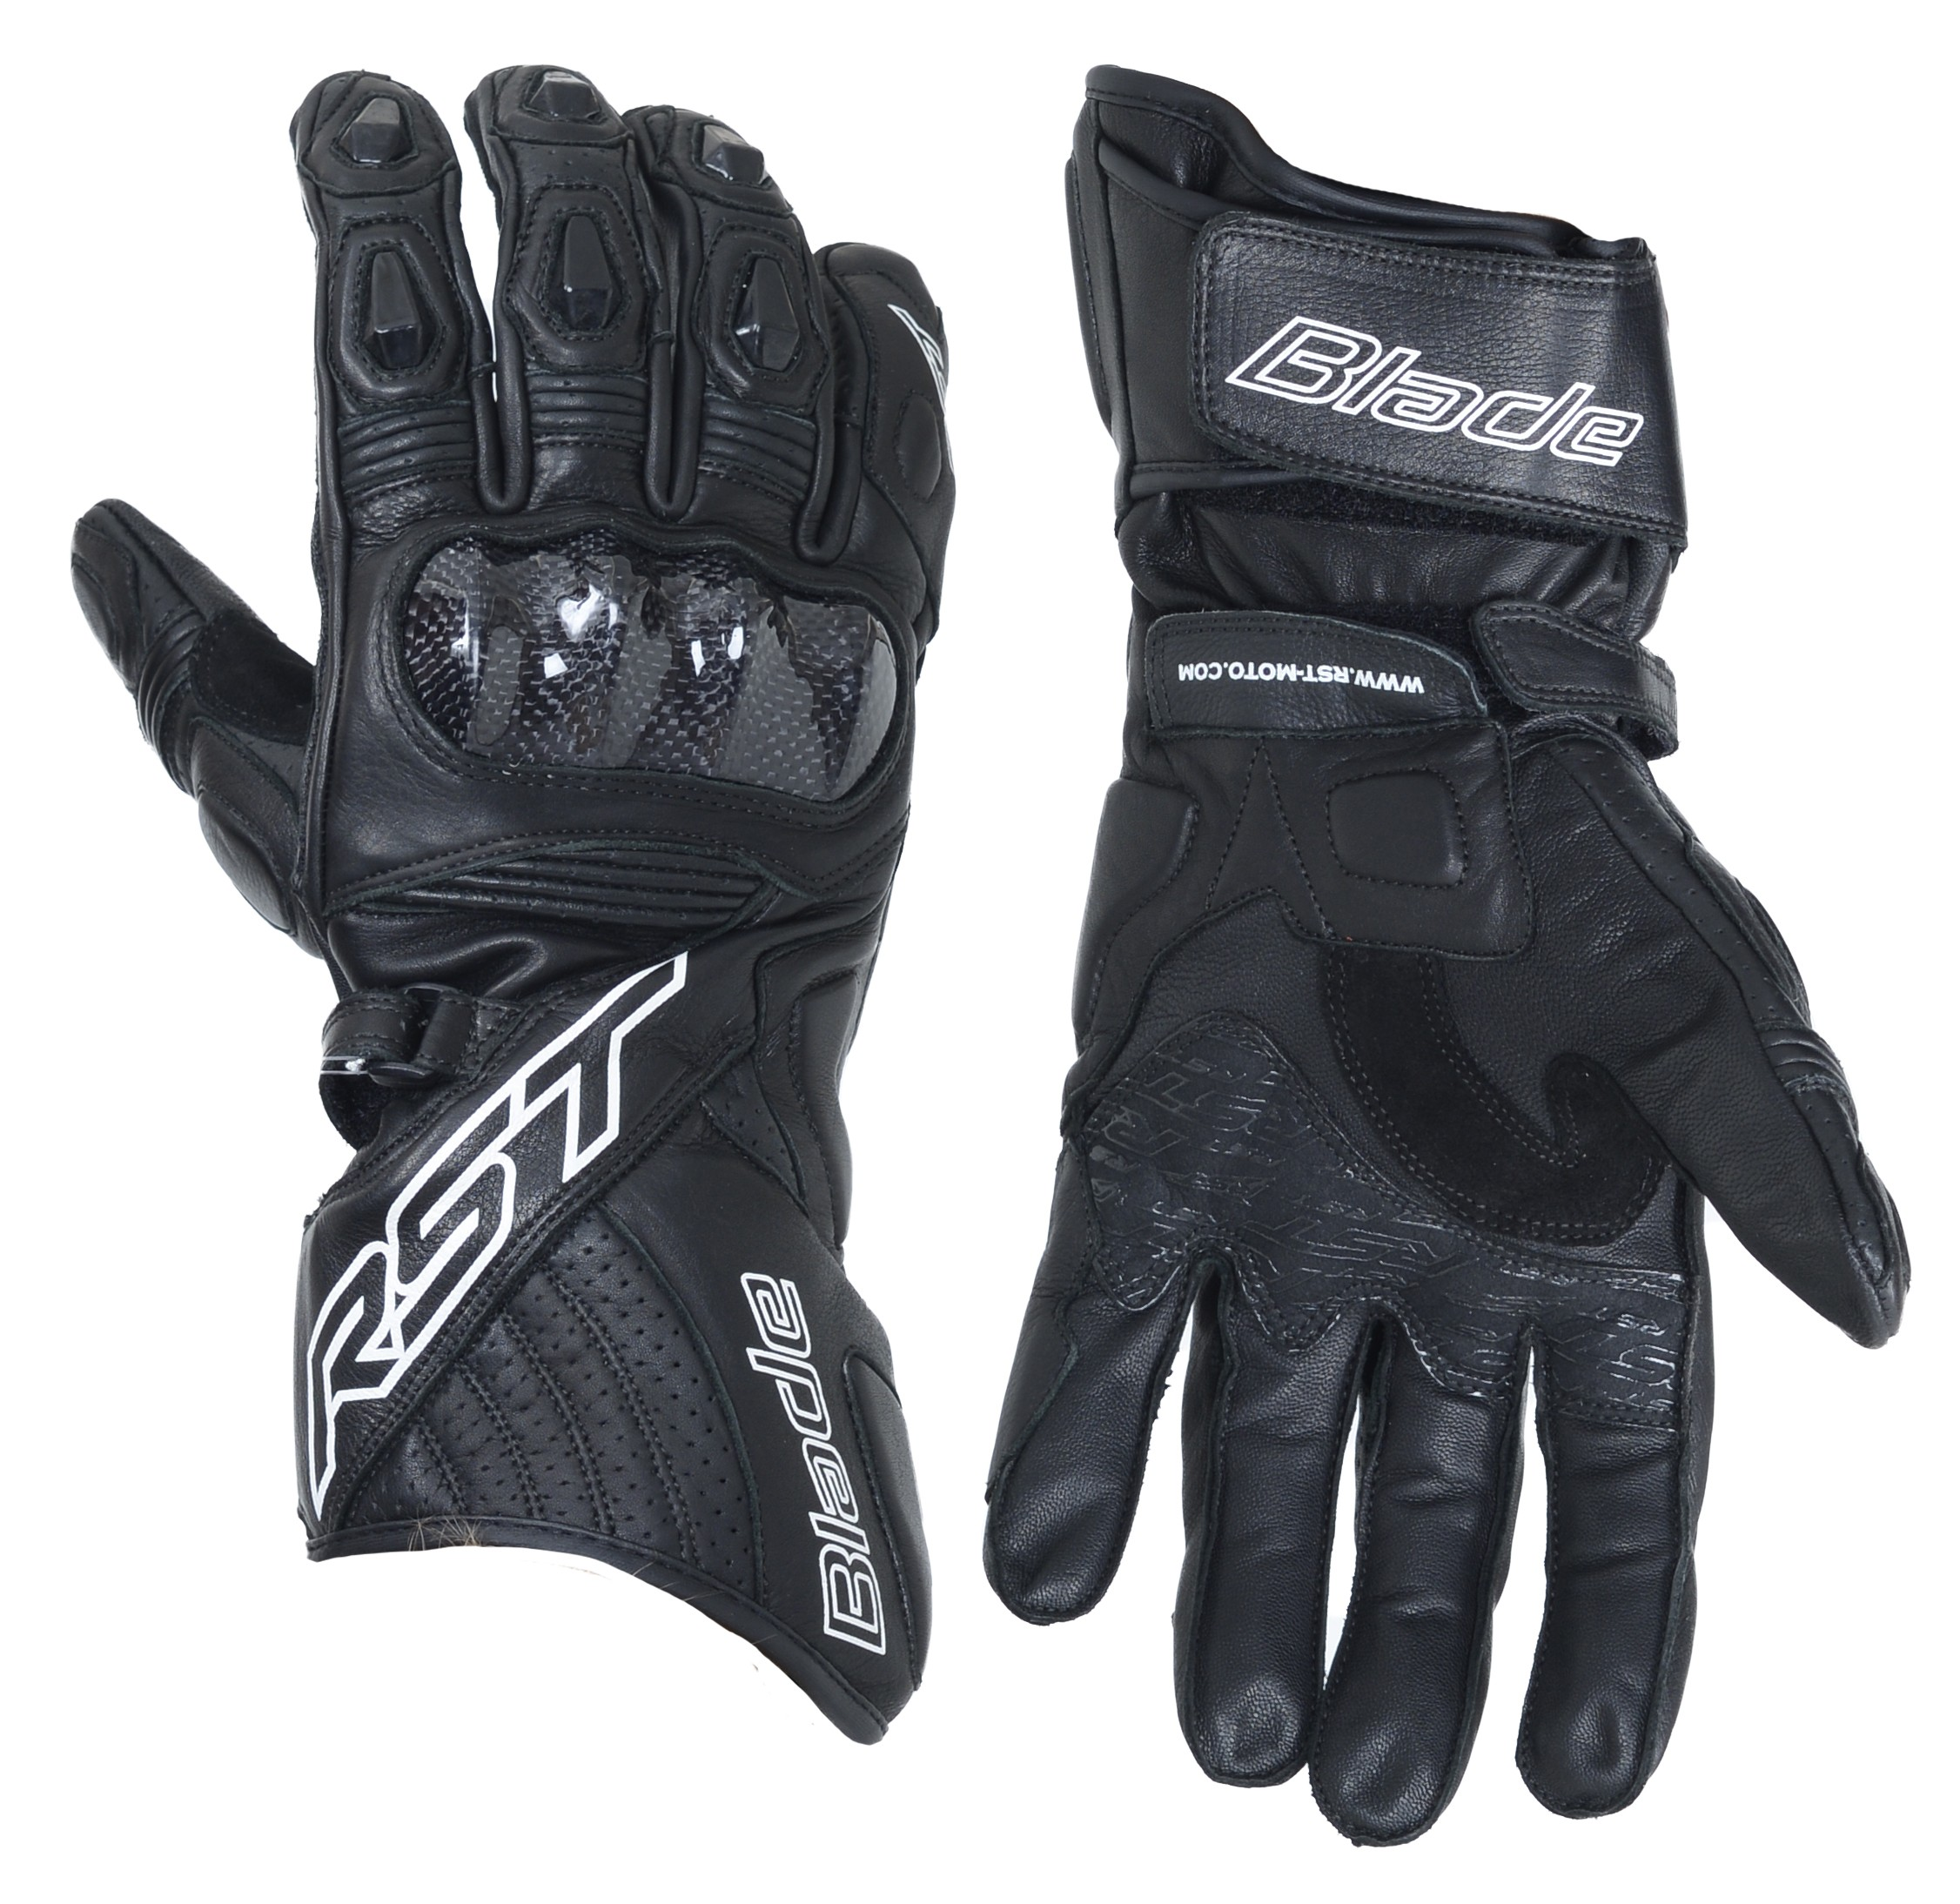 Motorcycle gloves ce approved - More Views